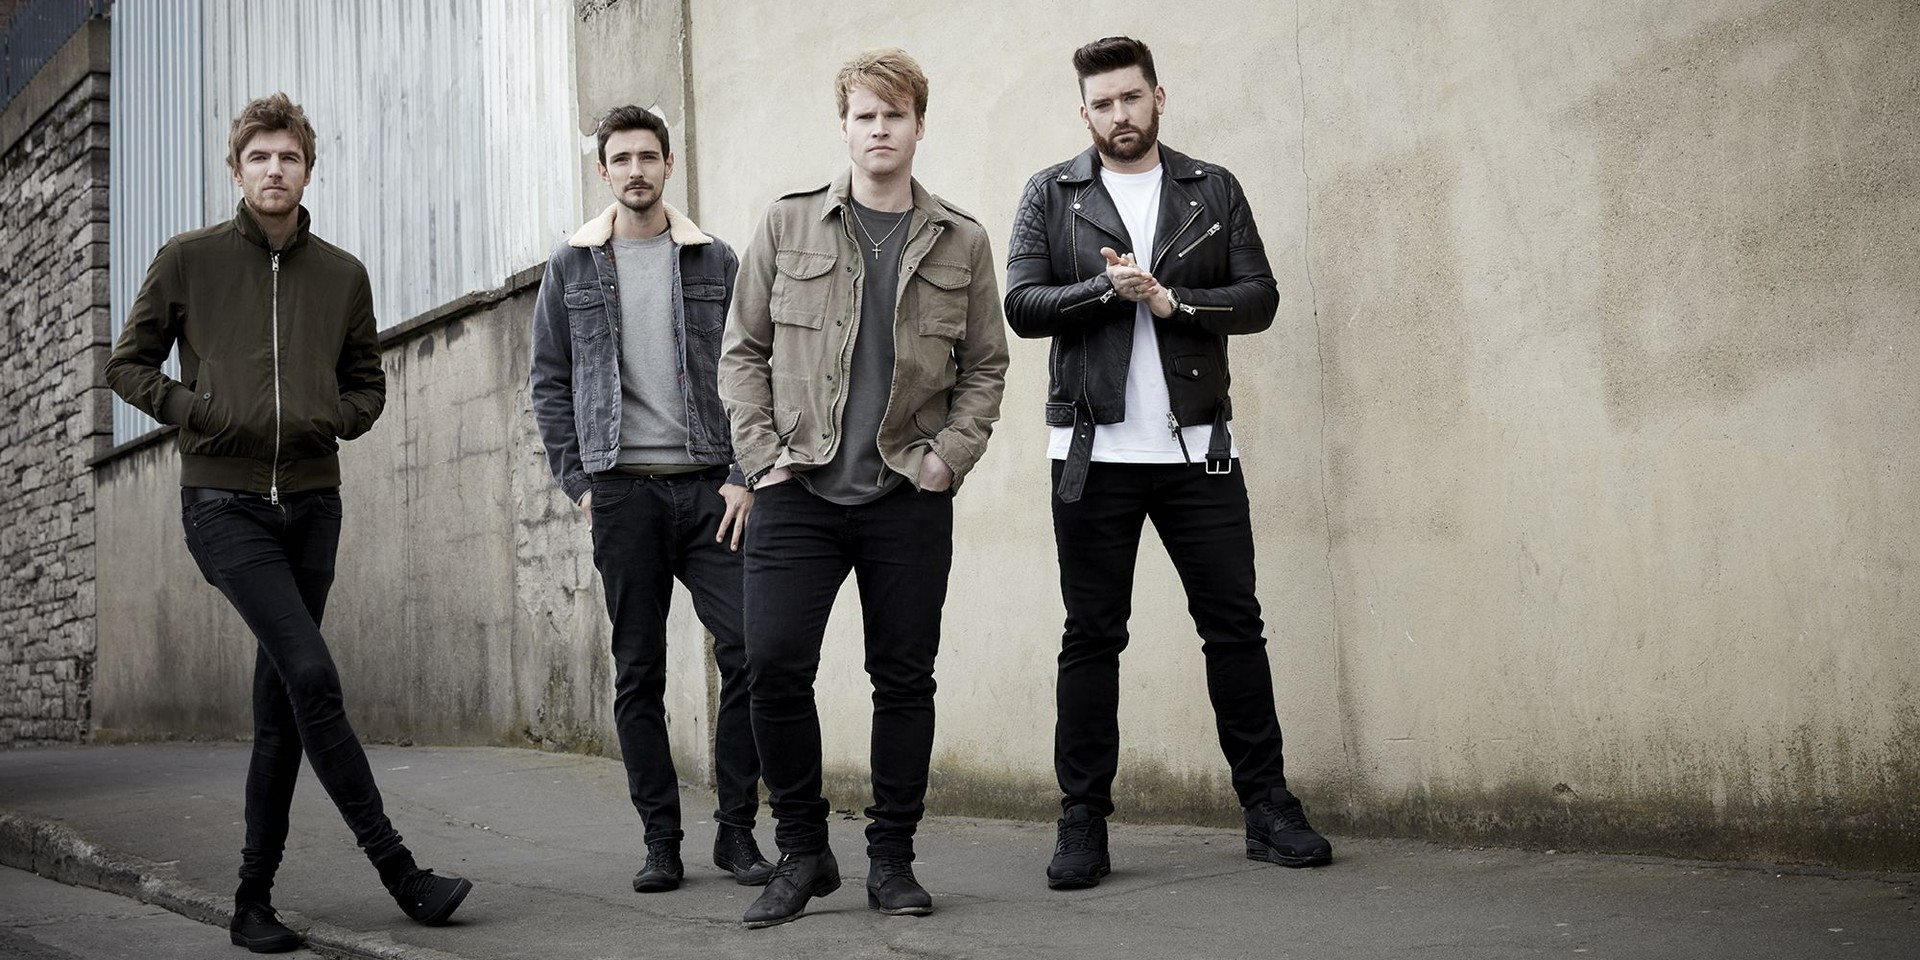 Kodaline's Jason Boland on the band's upcoming album, its Asian fan base, and more